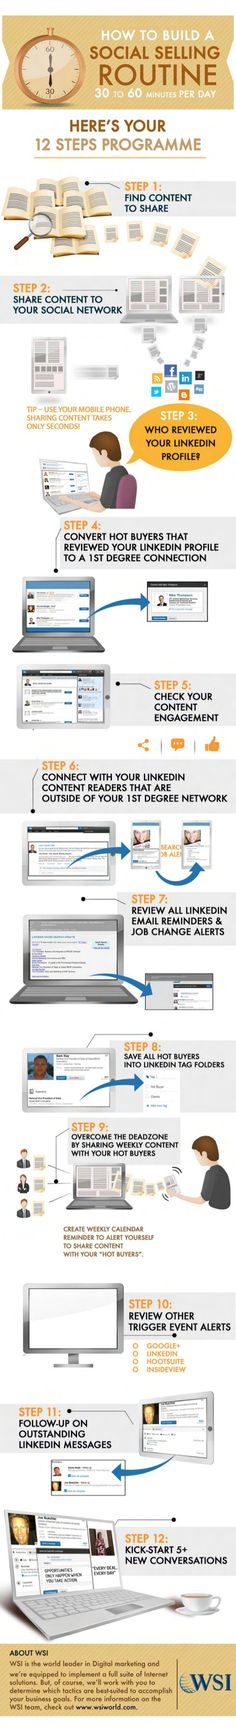 How to build a social selling routine #infografia #infographic #socialmedia